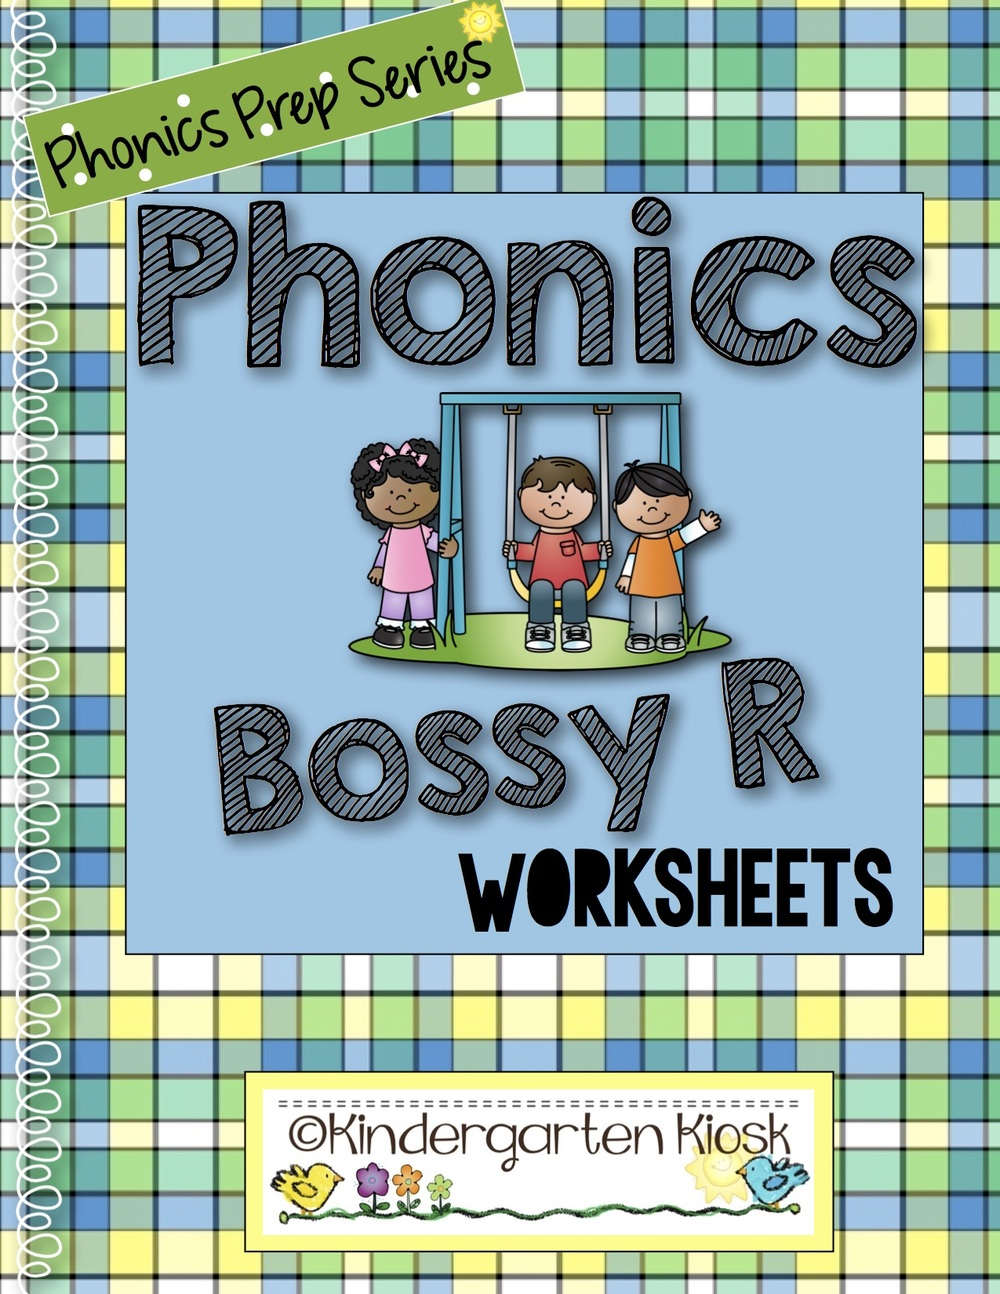 worksheet Bossy R Worksheets phonics prep bossy r worksheets kindergarten kiosk